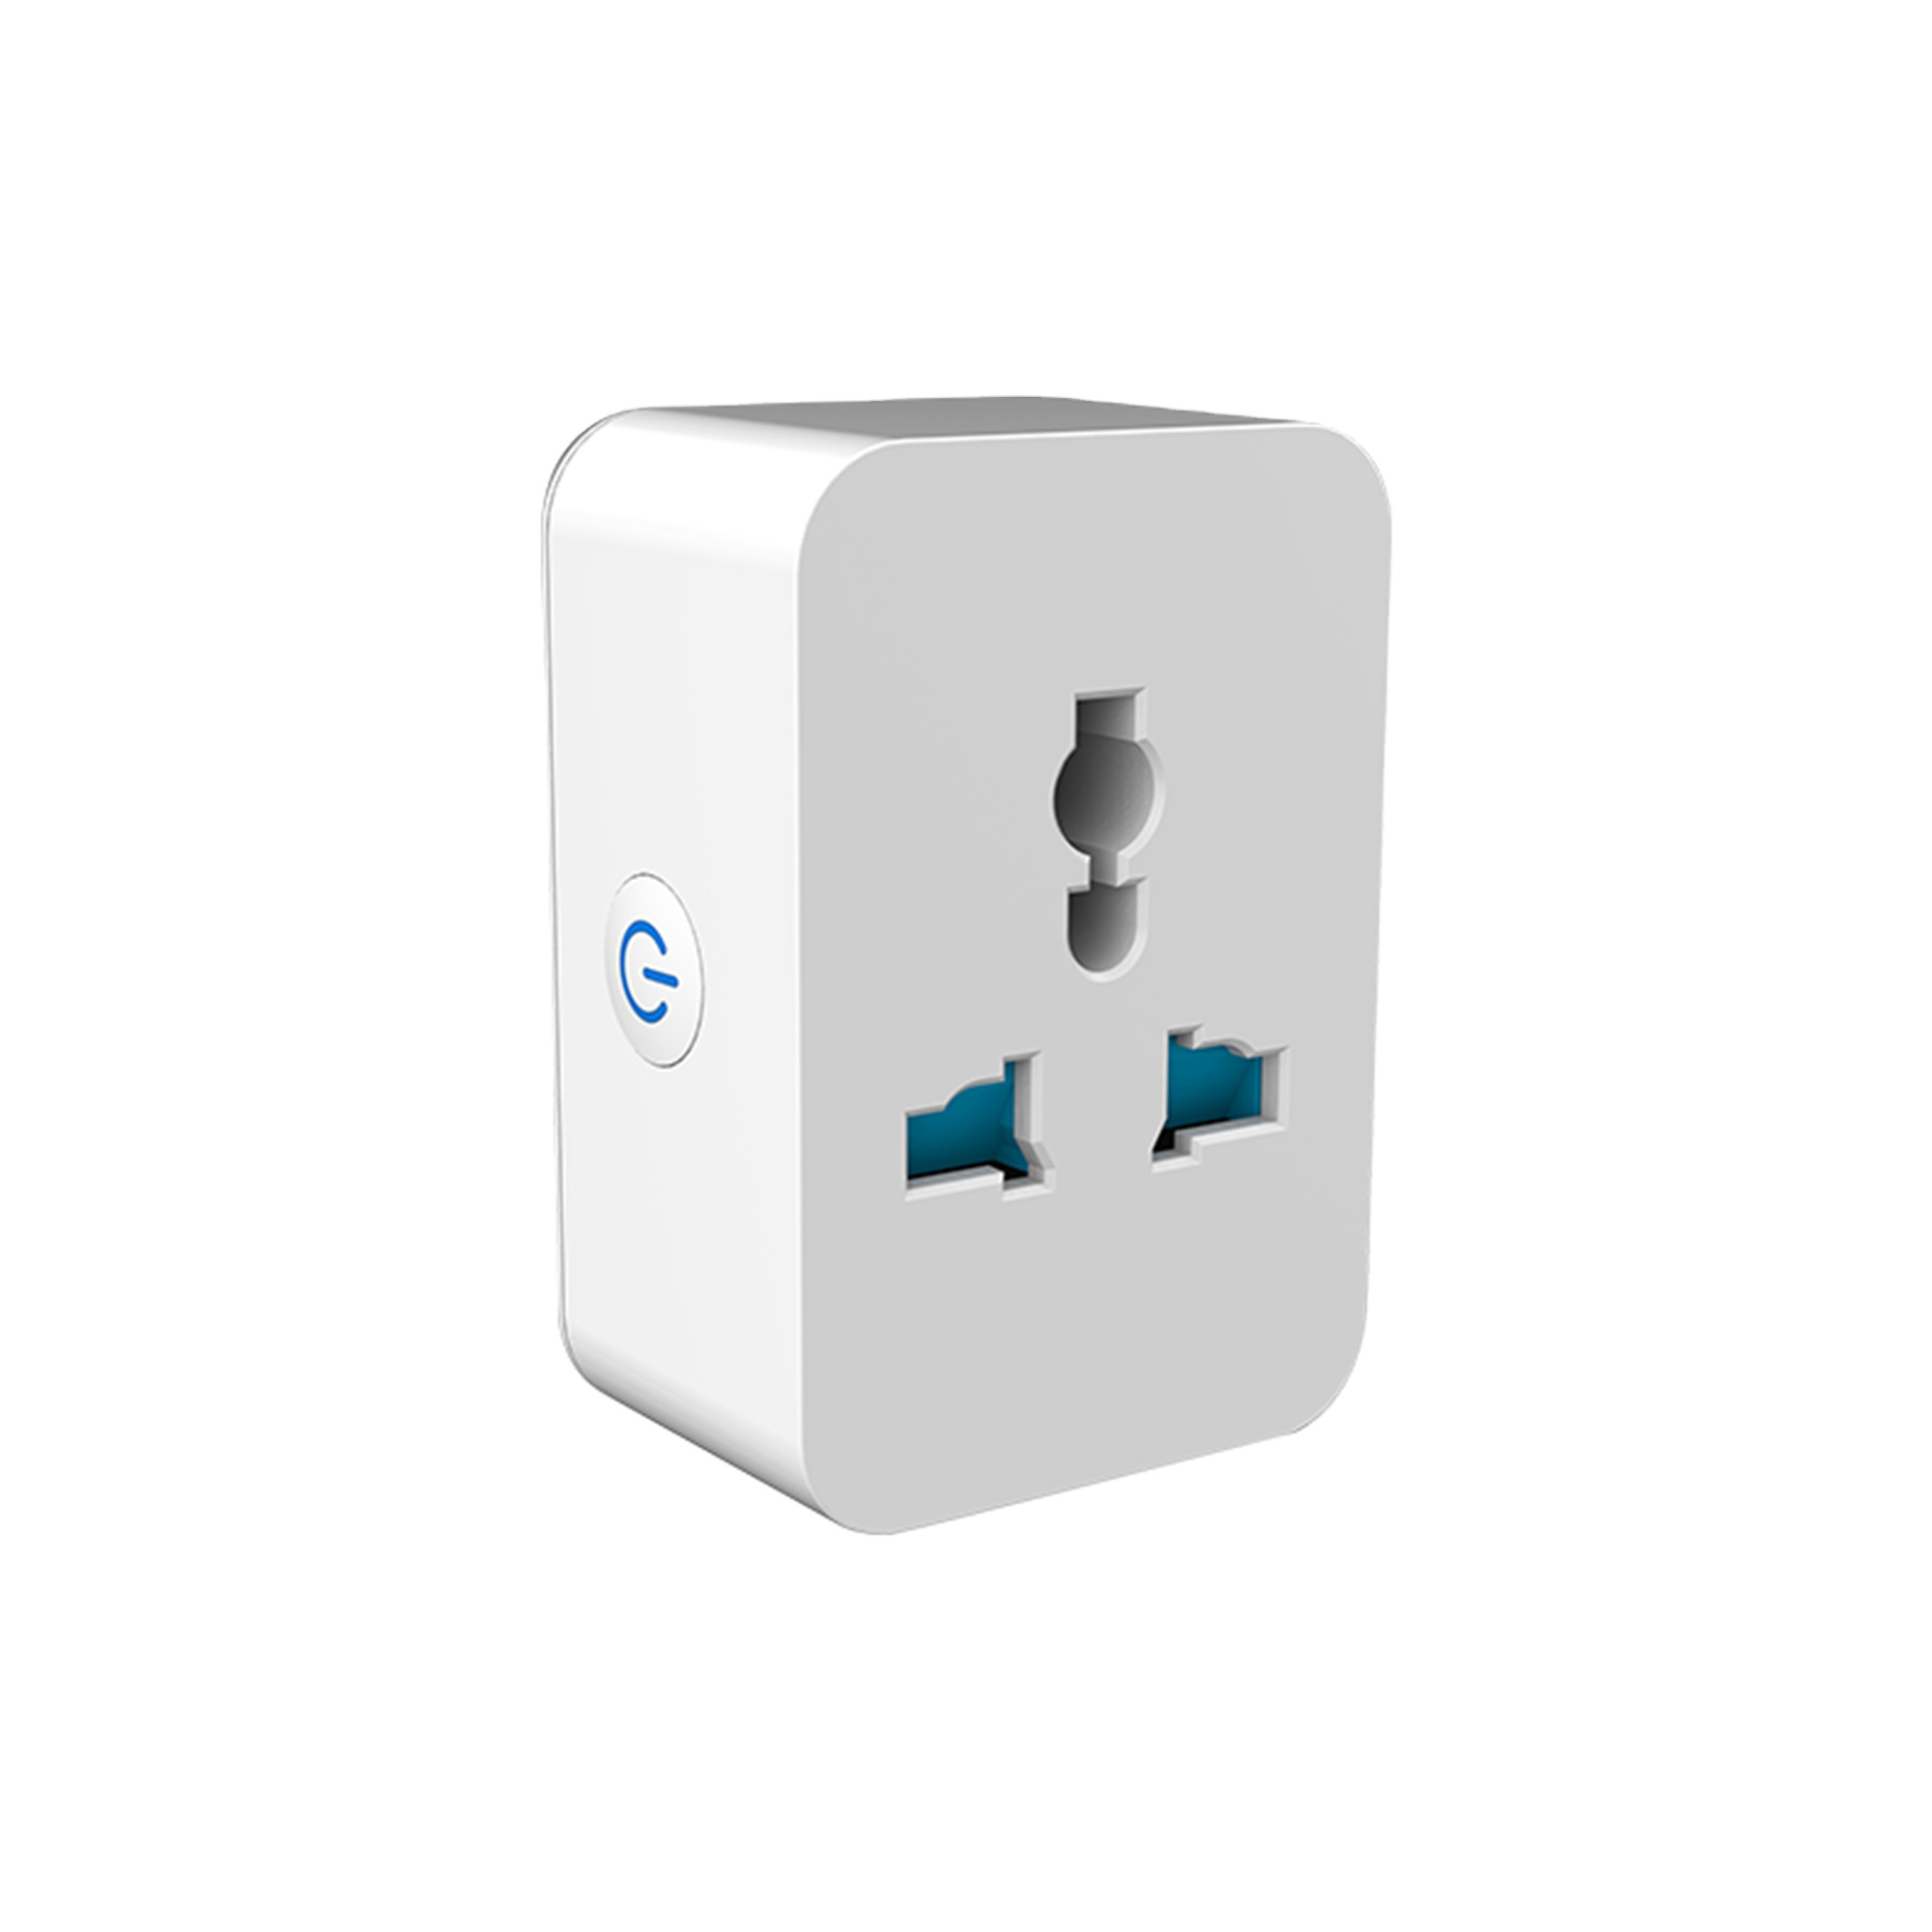 Smart Plug in Pakistan